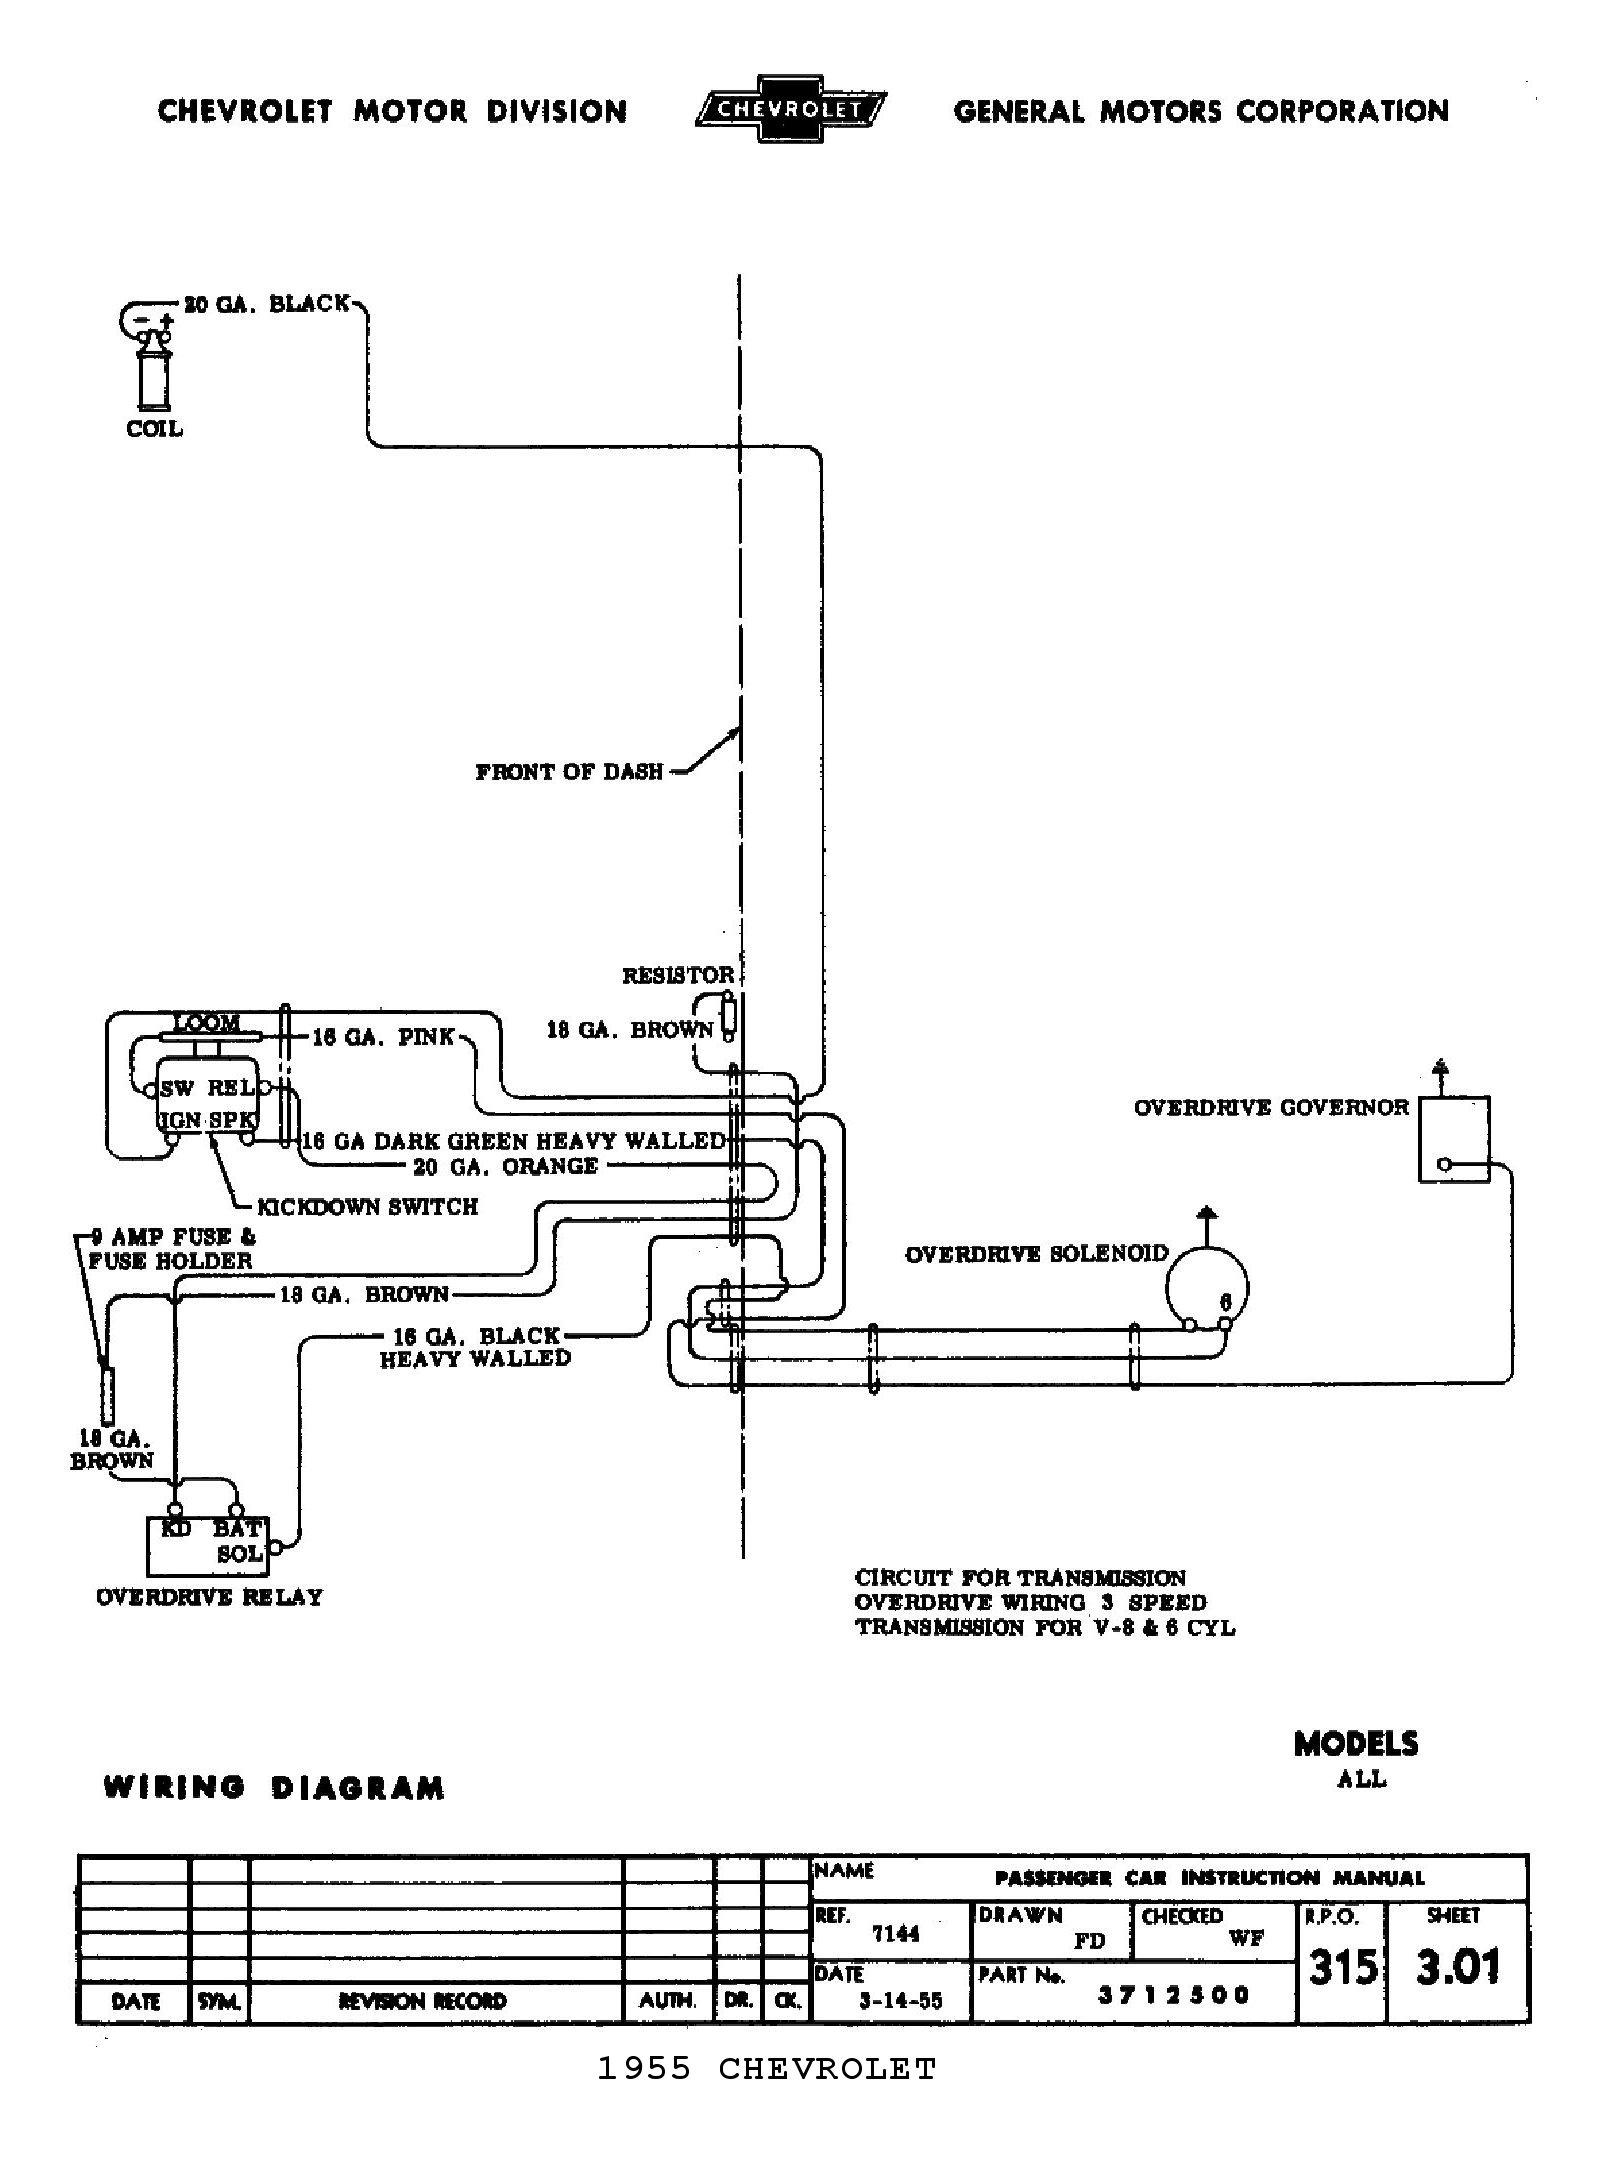 Chevy Wiring Harness Diagram | Free Wiring Diagram